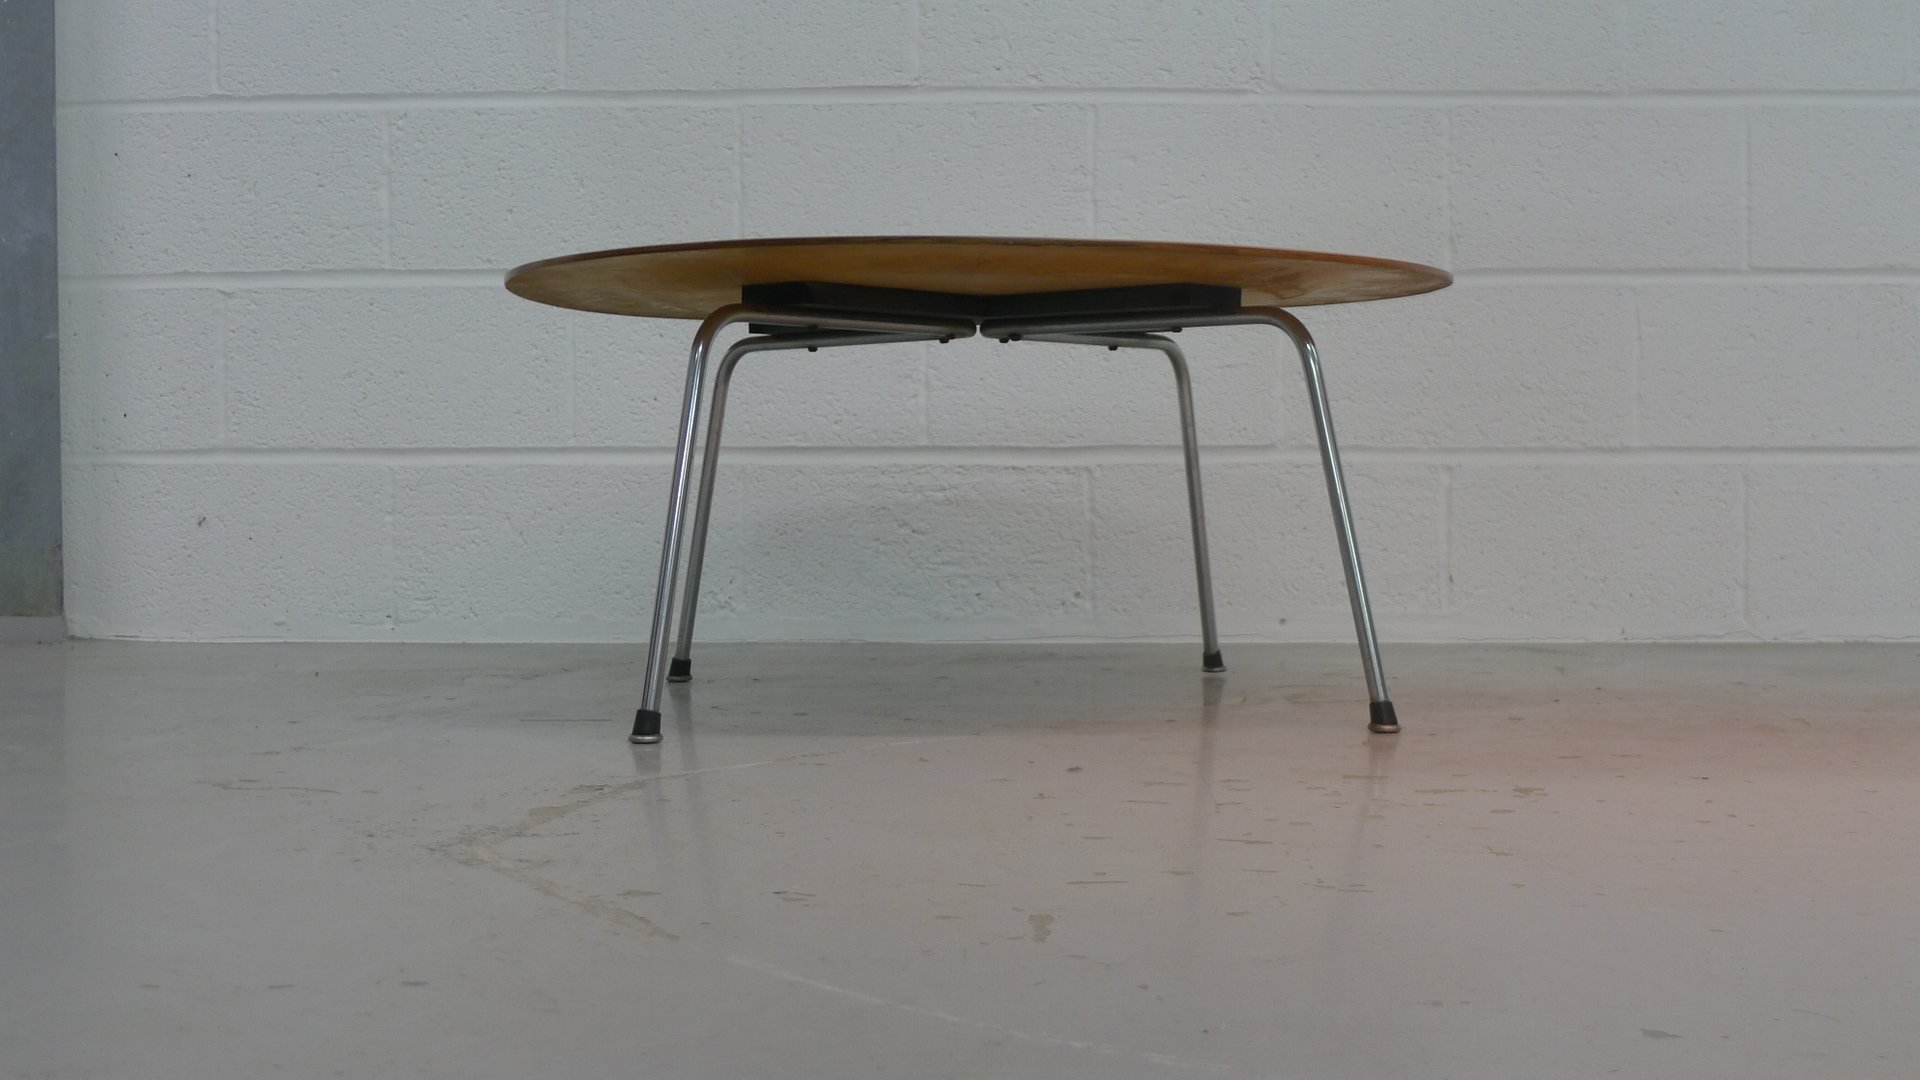 Table by charles ray eames for herman miller 1950s for - Eames table herman miller ...